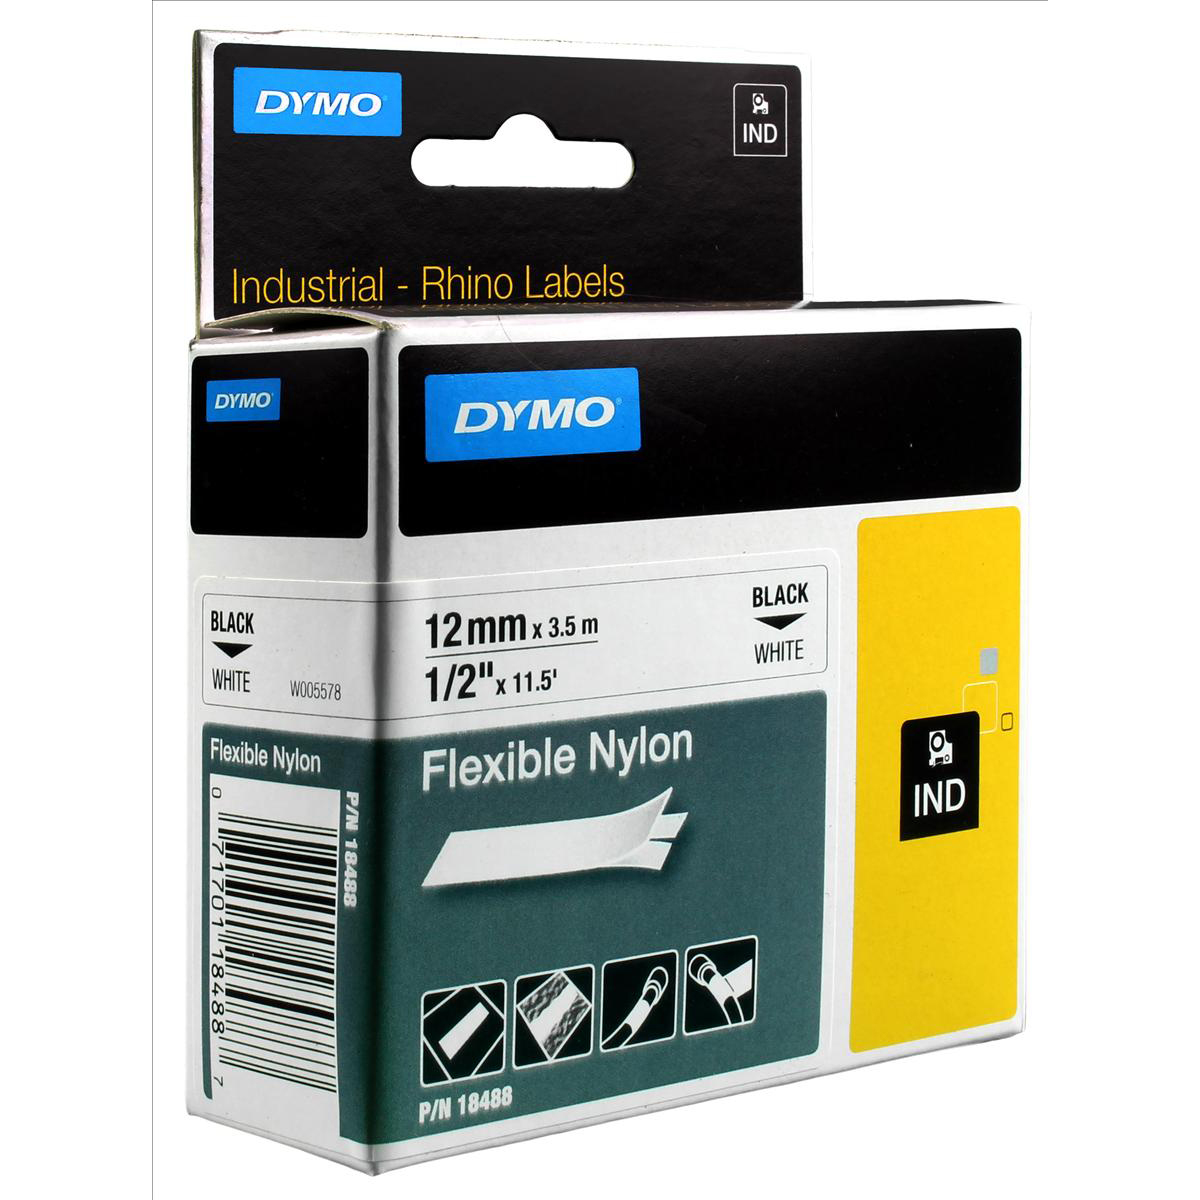 Label making tapes Dymo RhinoPRO Industrial Tape Flexible Nylon 12mm White Ref 18758 S0718100